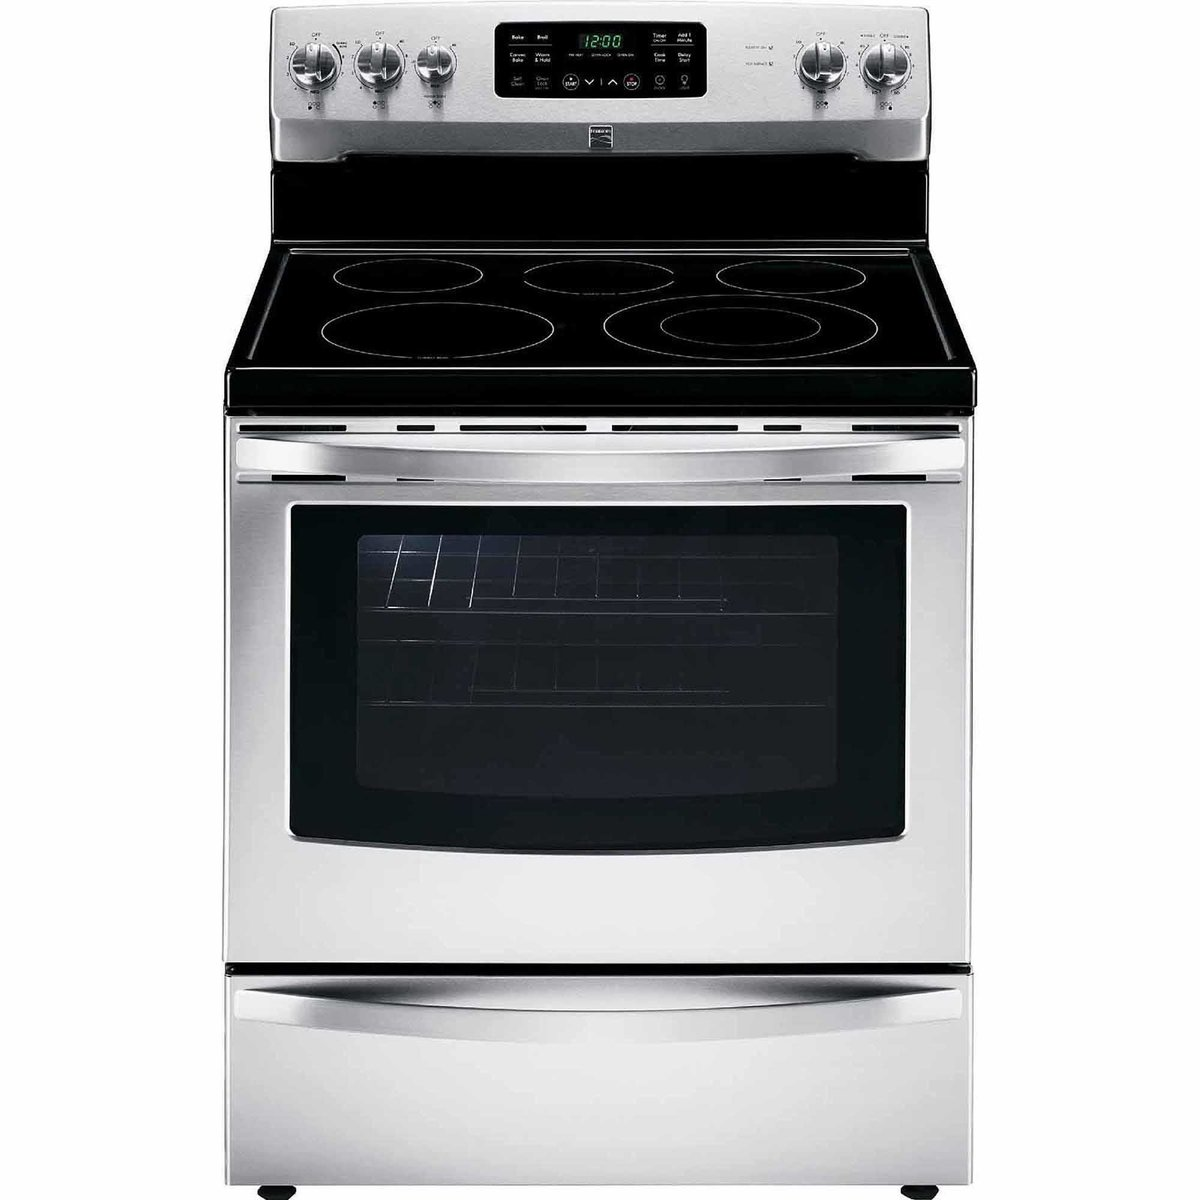 Kenmore 94193 5.4 cu. ft. Self Clean Electric Range with Convection Oven and Turbo Boil Element in Stainless Steel, includes delivery and hookup